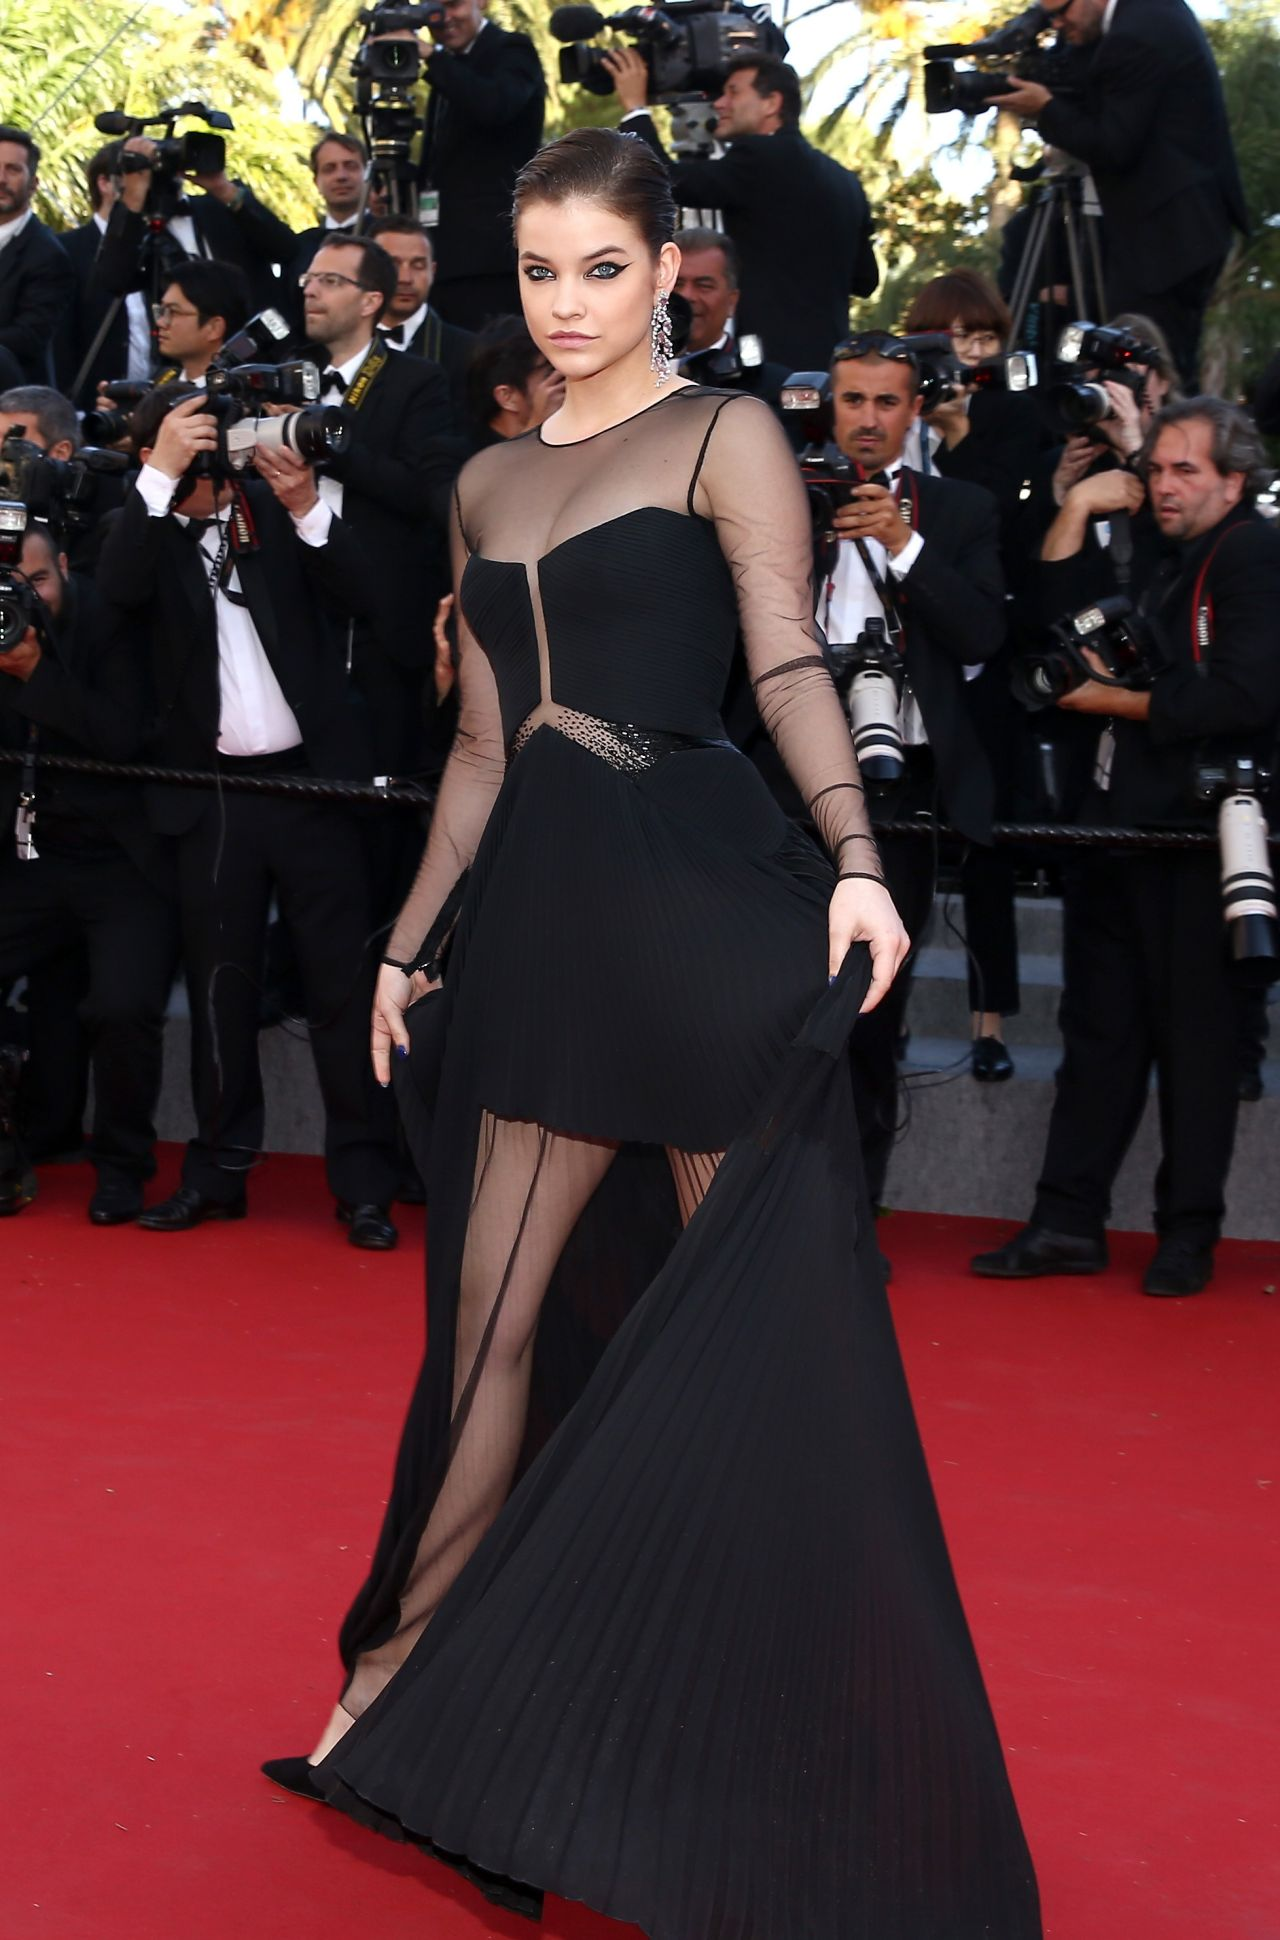 Barbara palvin youth premiere at 2015 cannes film festival - Barbara palvin red carpet ...